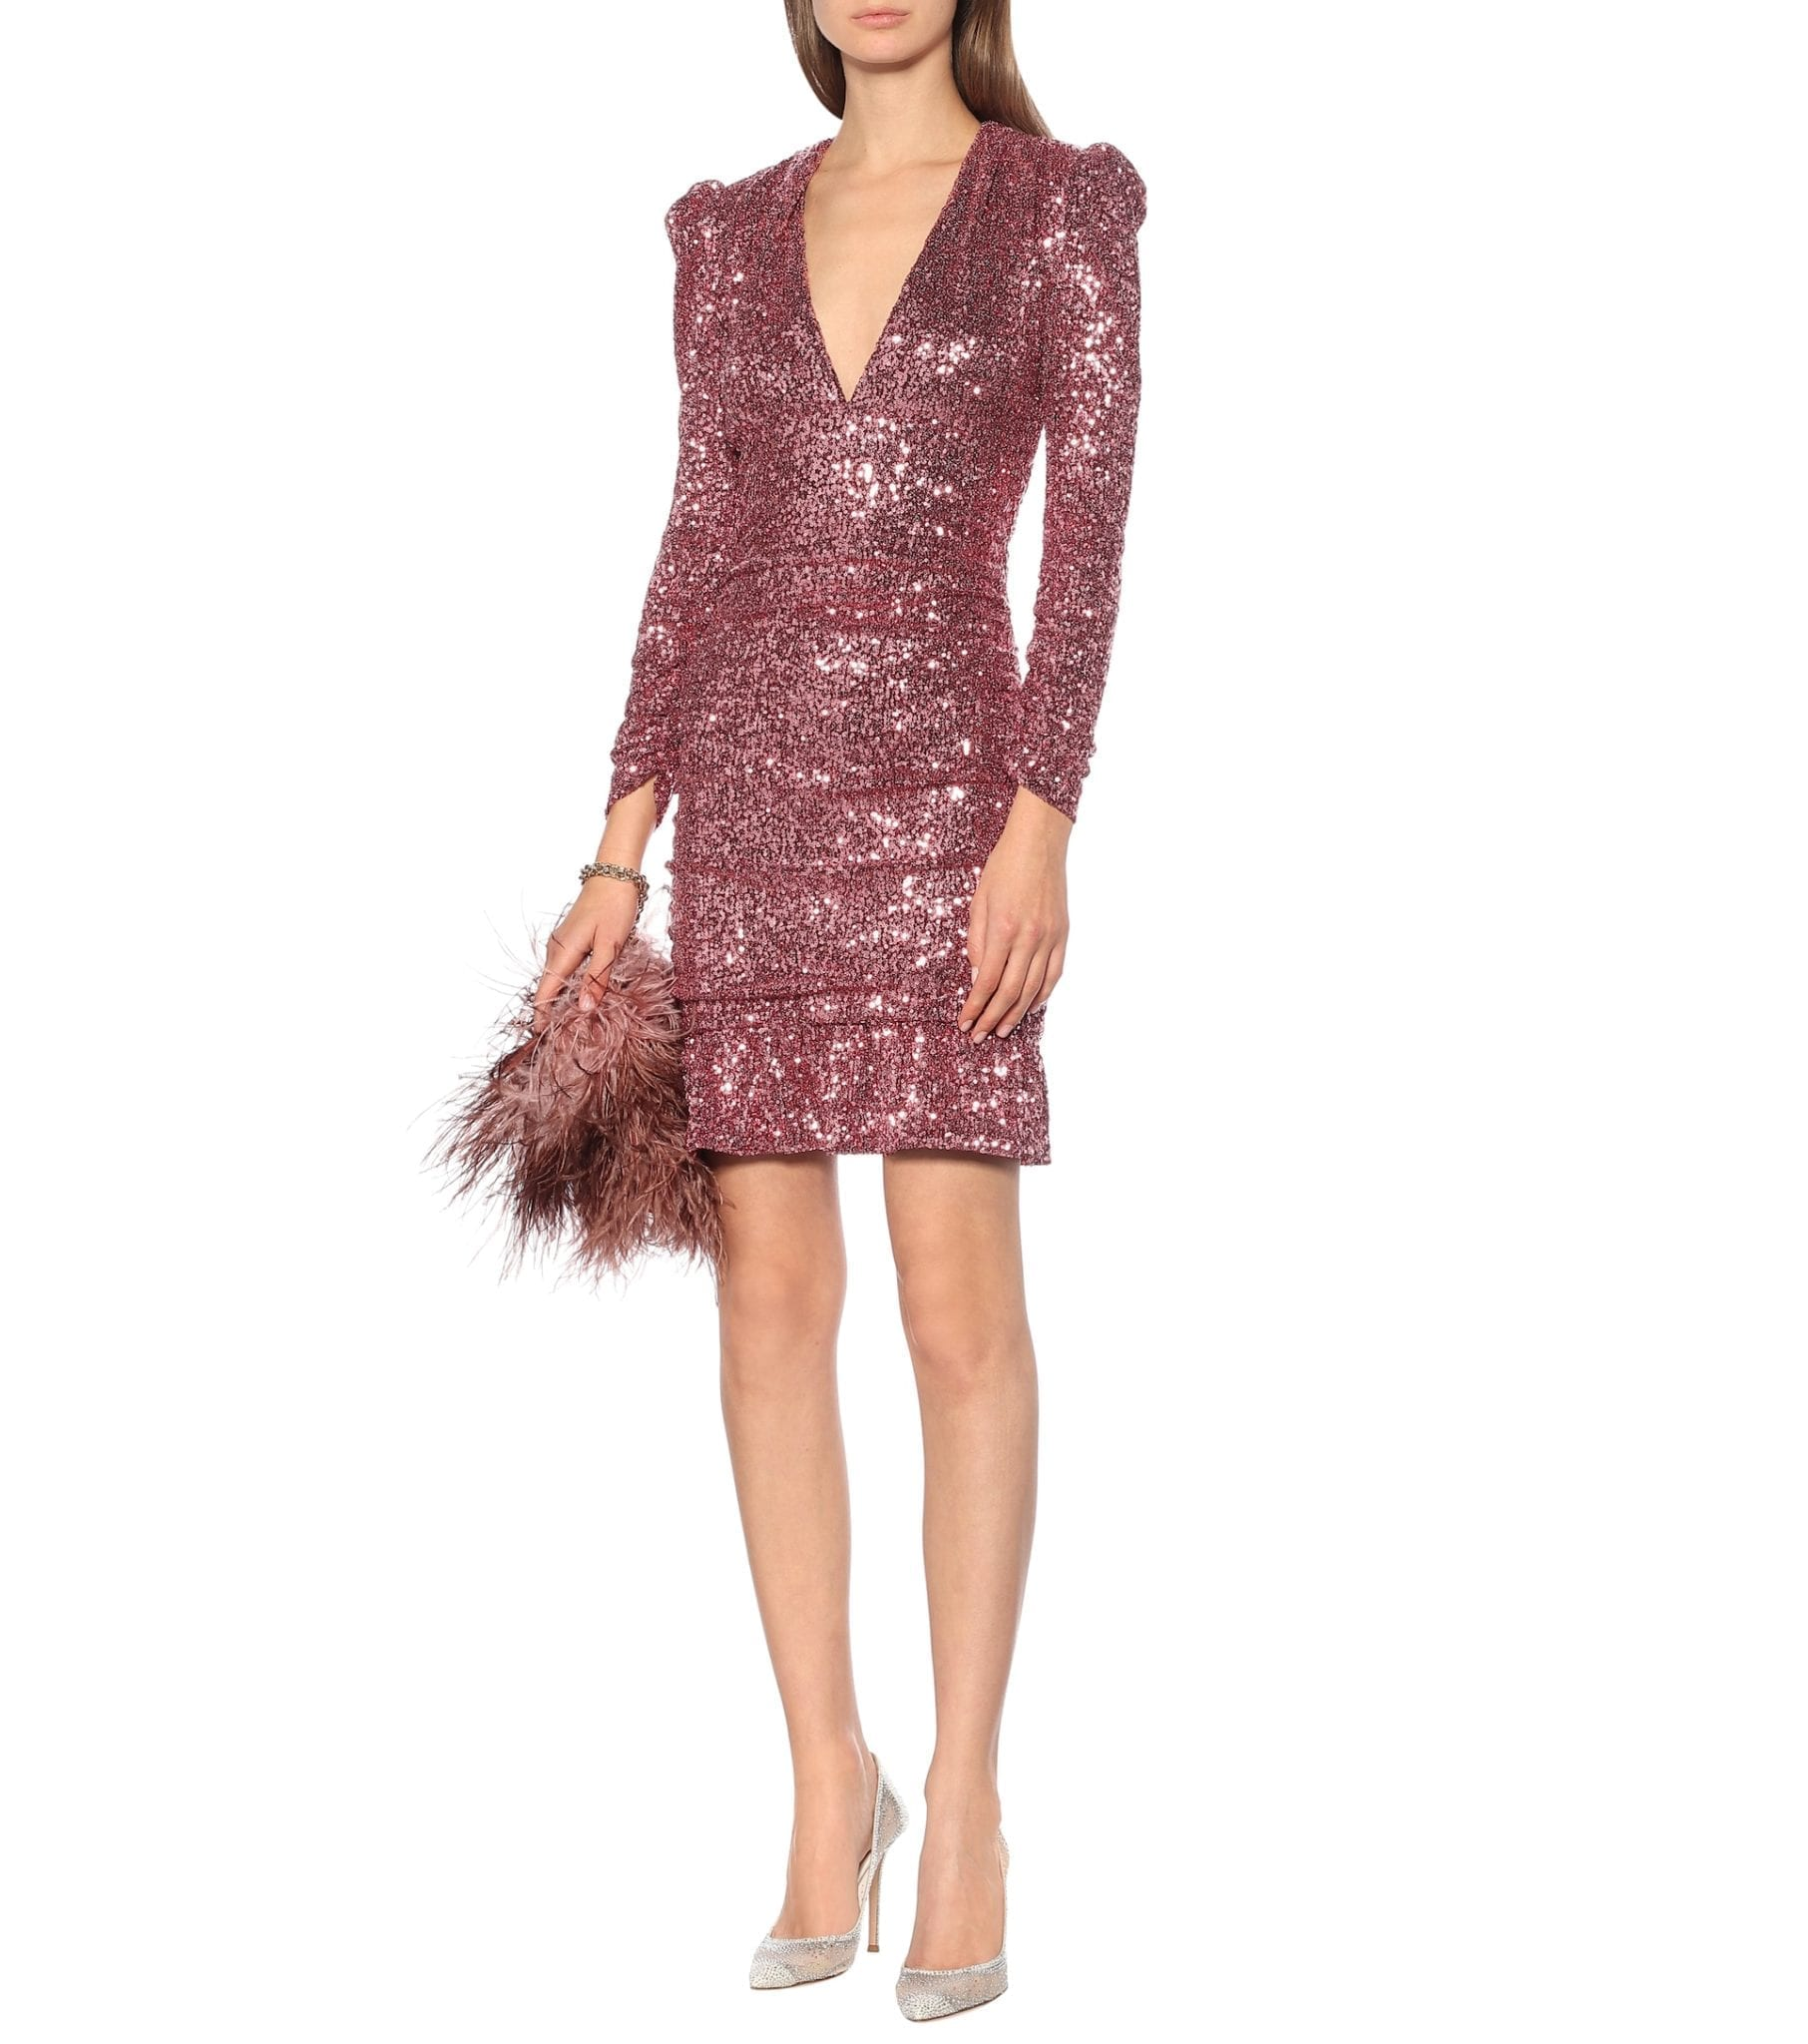 REBECCA VALLANCE Sequined Mini Dress